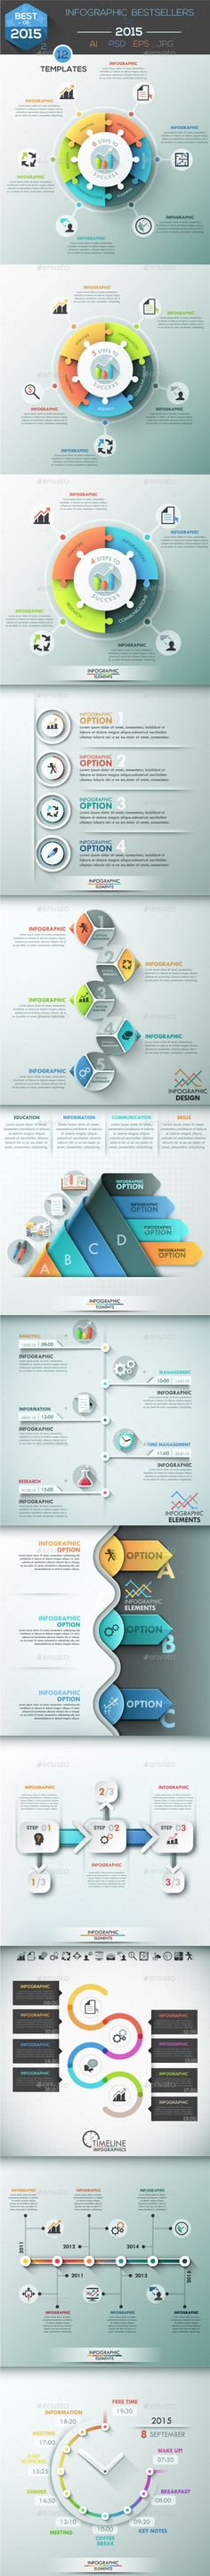 Infographic Bestsellers of 2015. Part 2 Template. Download here: http://graphicriver.net/item/infographic-bestsellers-of-2015-part-2/14327862?ref=ksioks